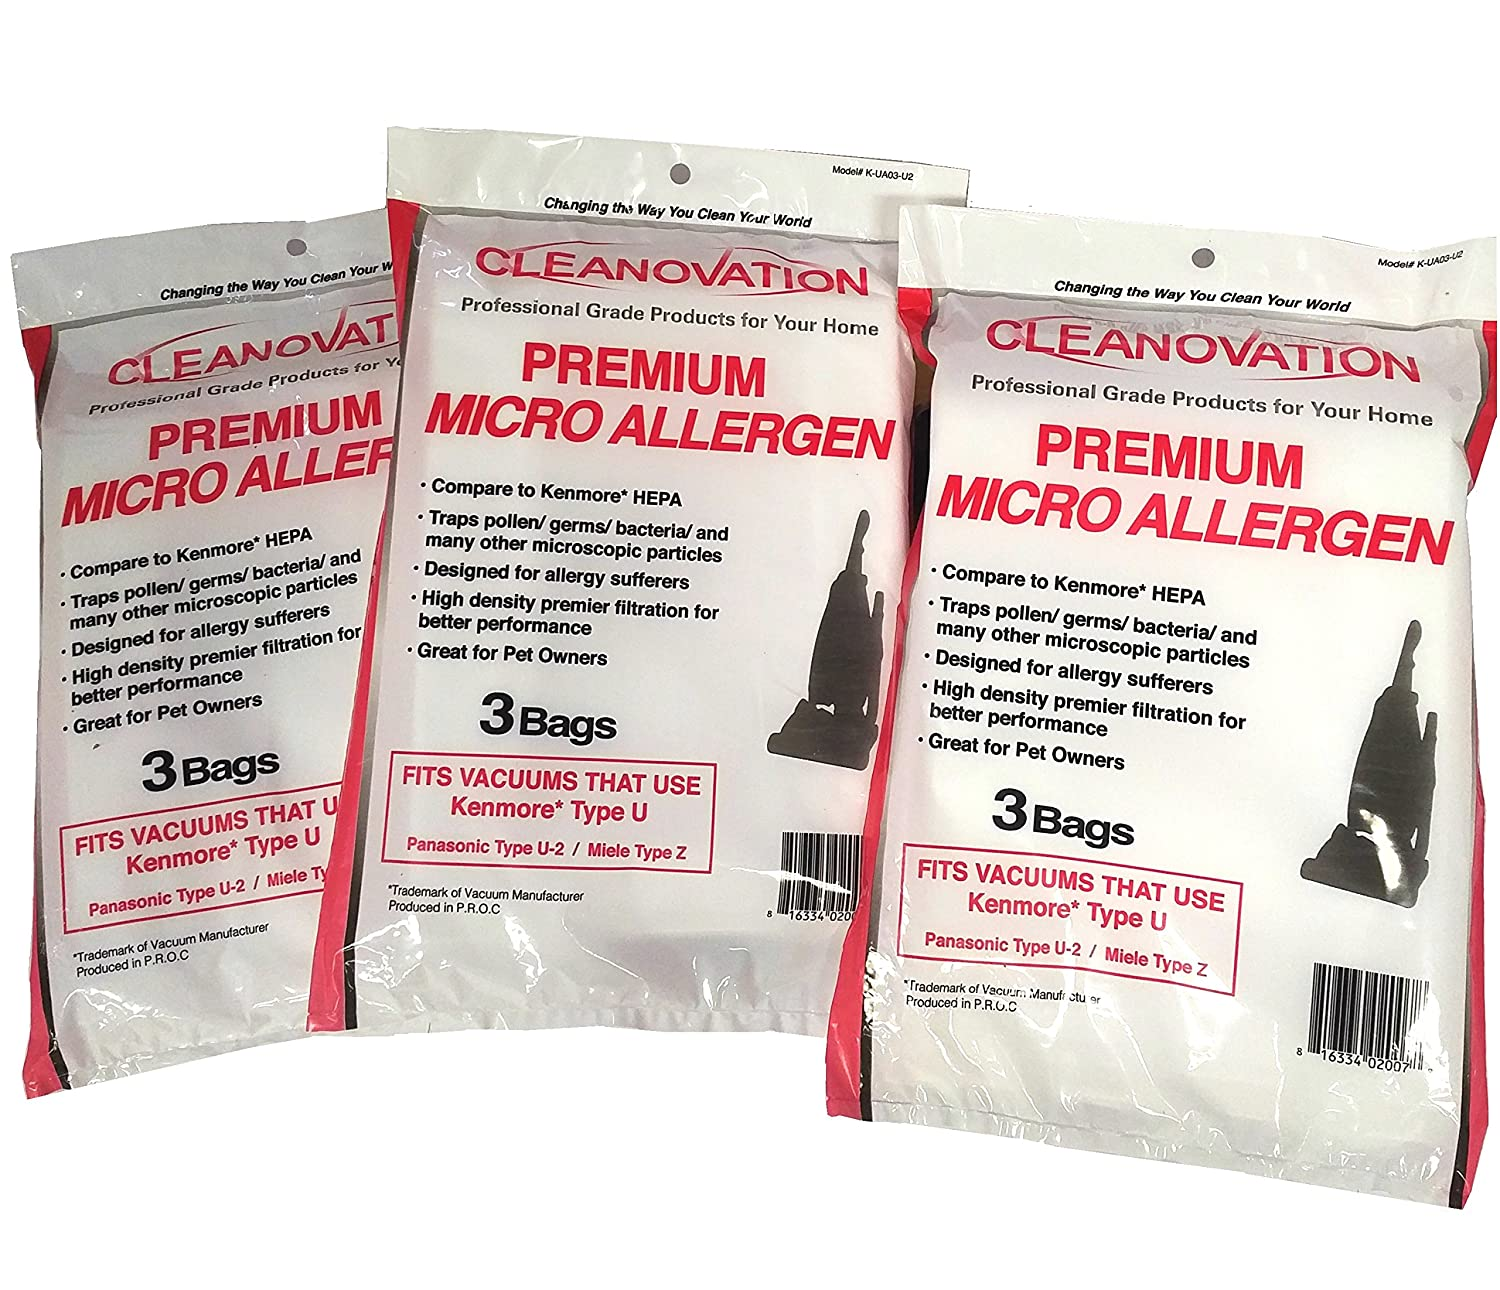 CLEANOVATION Kenmore Upright Type U (50688 & 50690) Vacuum Cleaner Bags Panasonic Type U-2 Miele Upright Type Z - 9 White Micro Allergen Bags